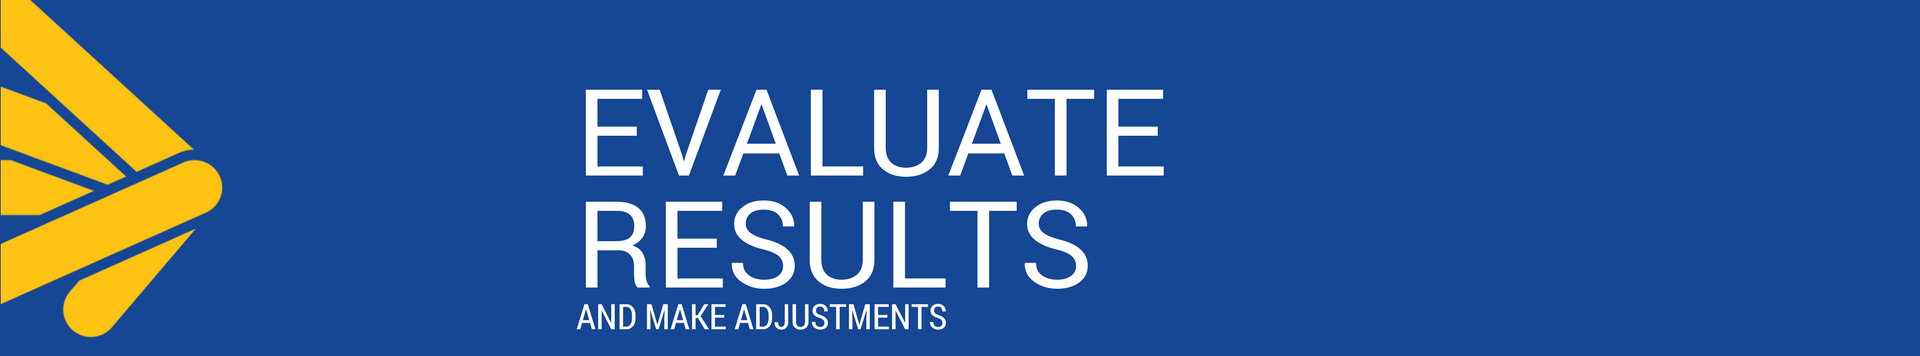 evaluate results and make adjustments